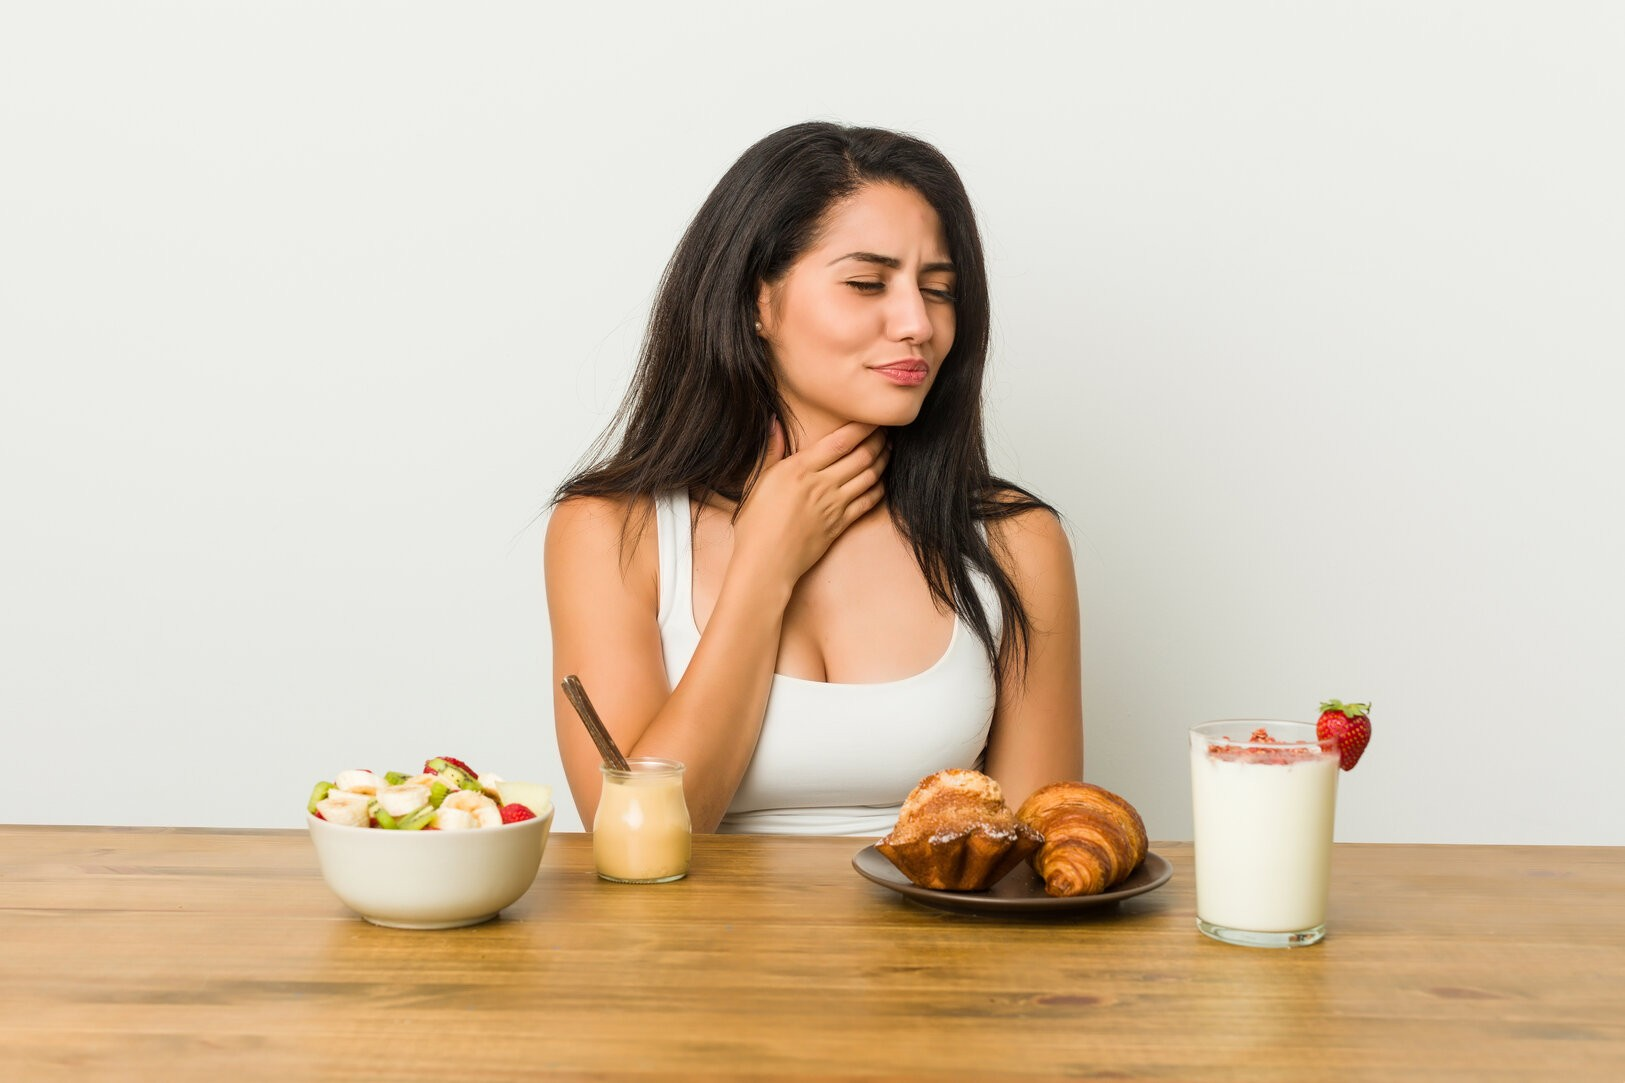 rsz young curvy woman taking breakfast suffers pain throat due virus infection